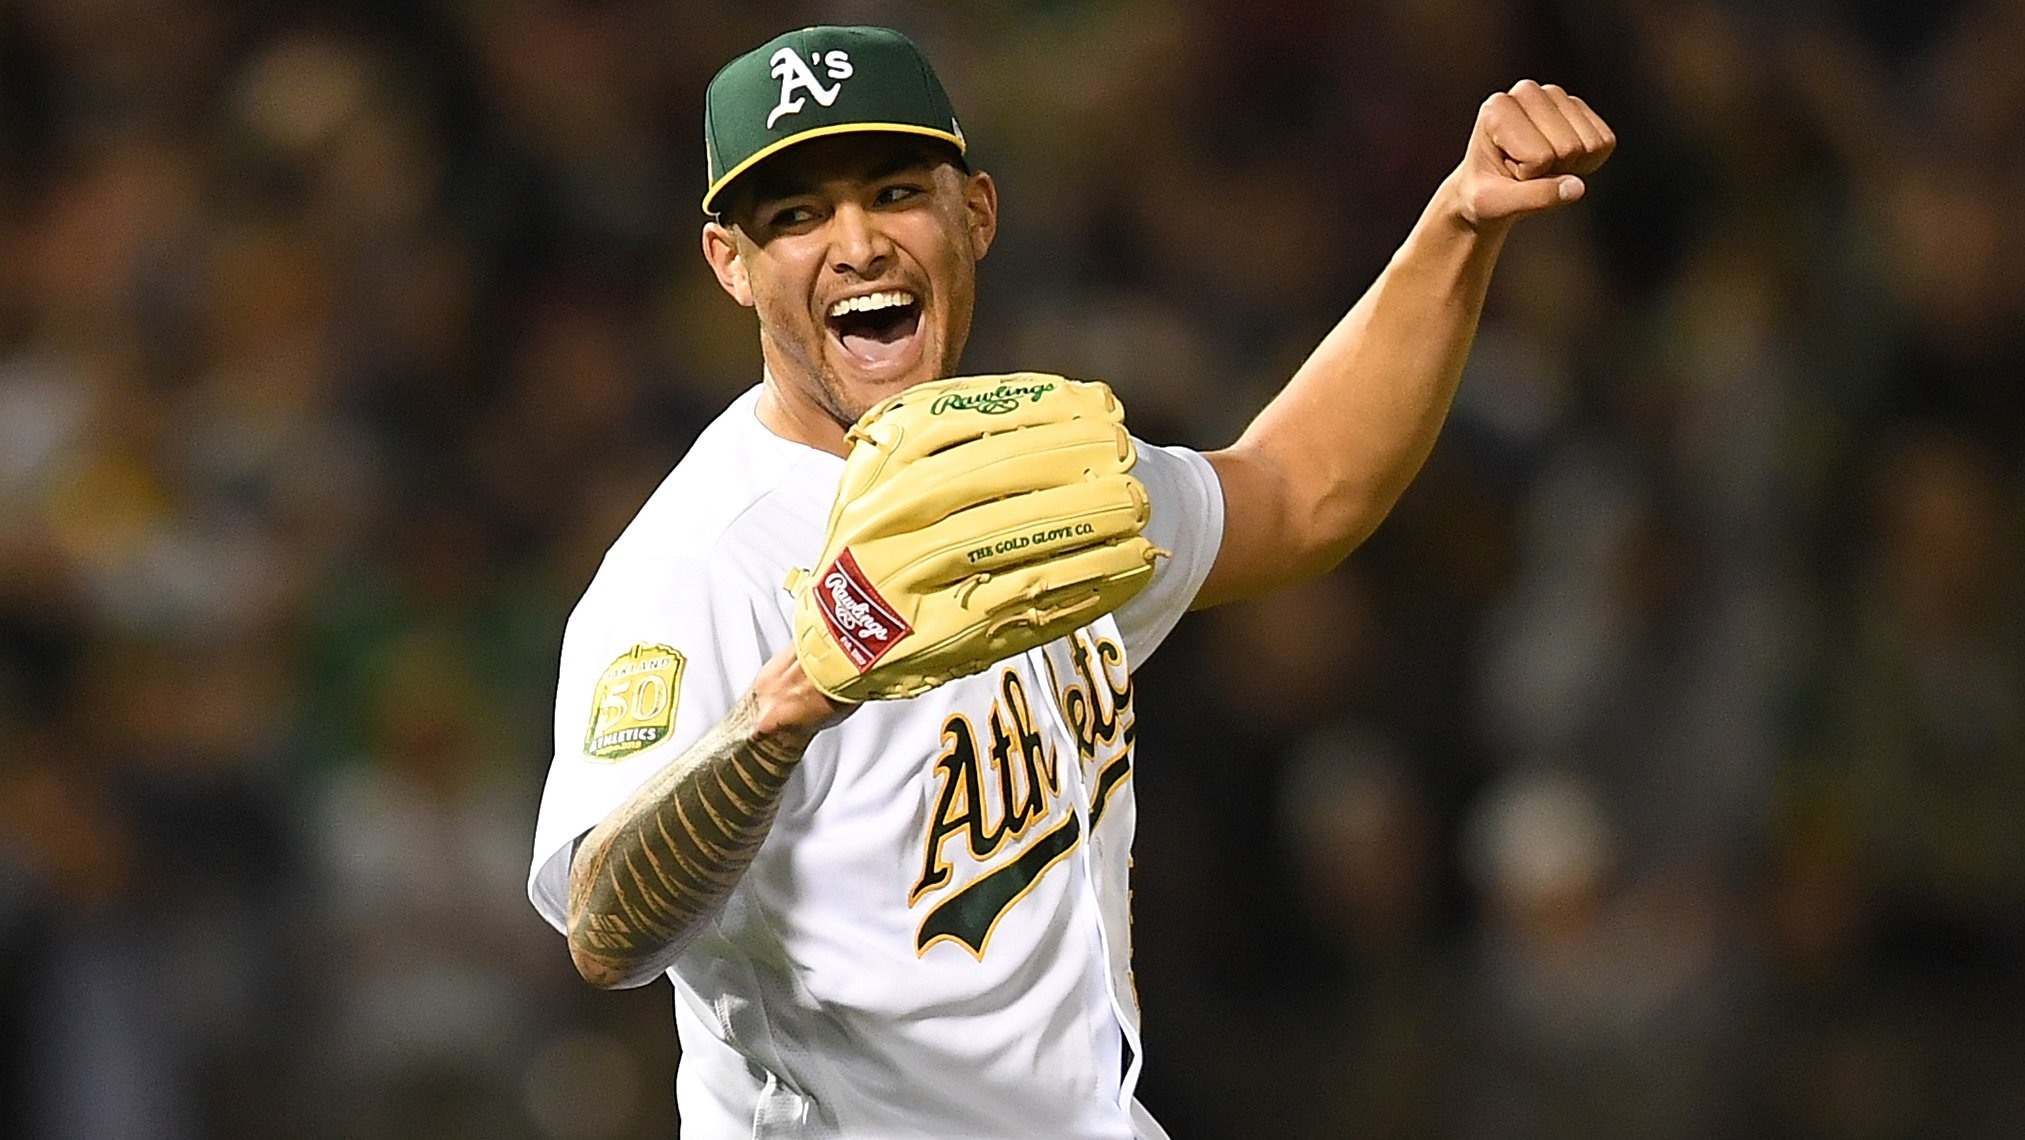 Sean Manaea faces the Red Sox again tonight … https://t.co/nAIzHz5inr